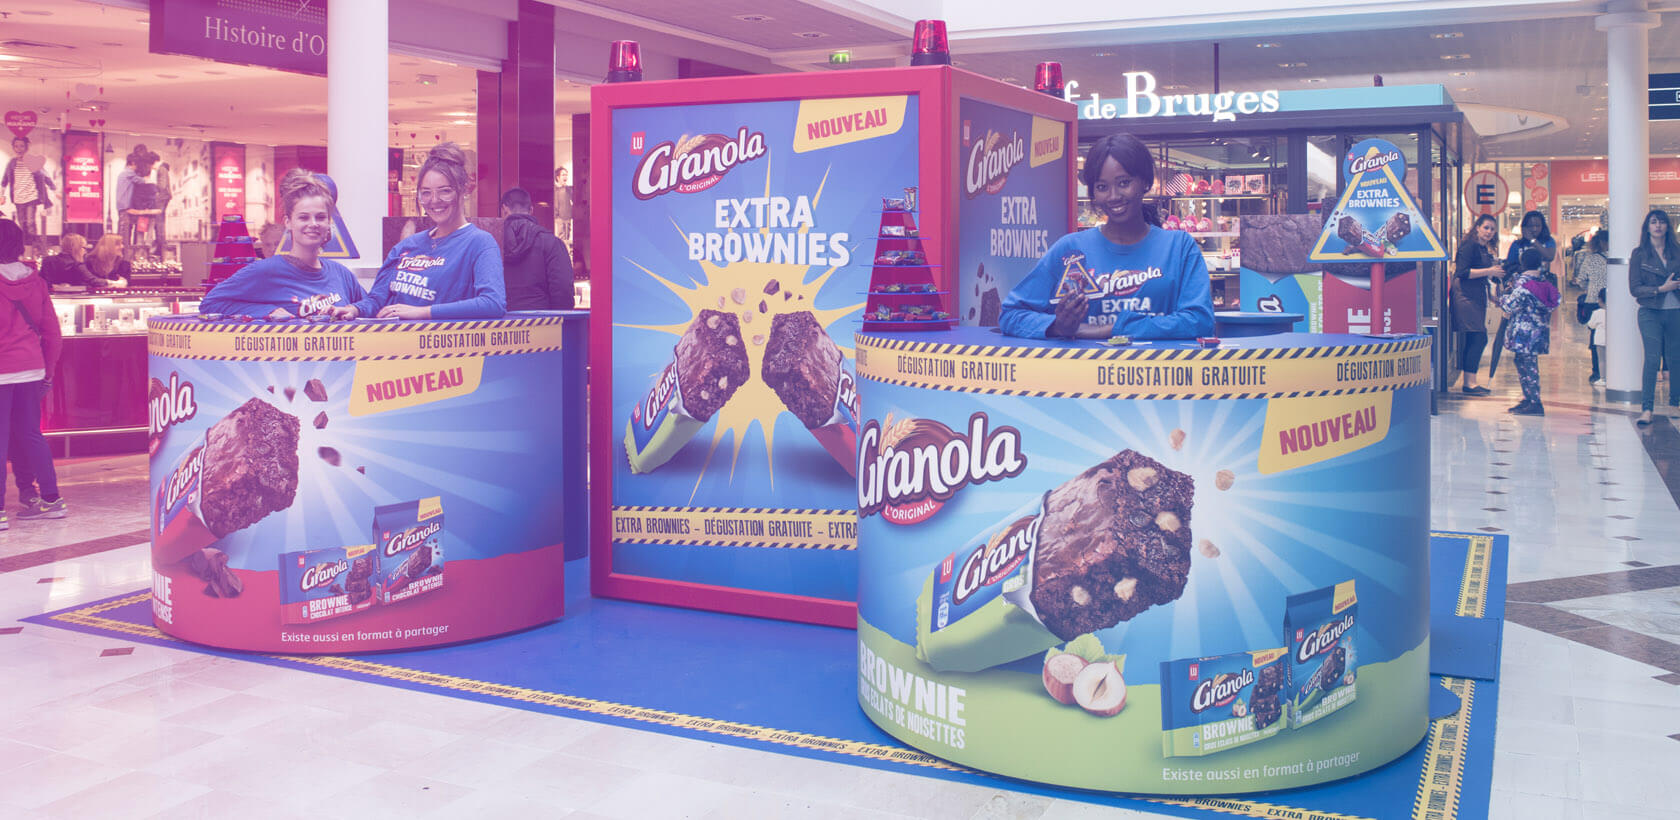 Animation commerciale Granola Extra Brownie - Mall Tour Globe